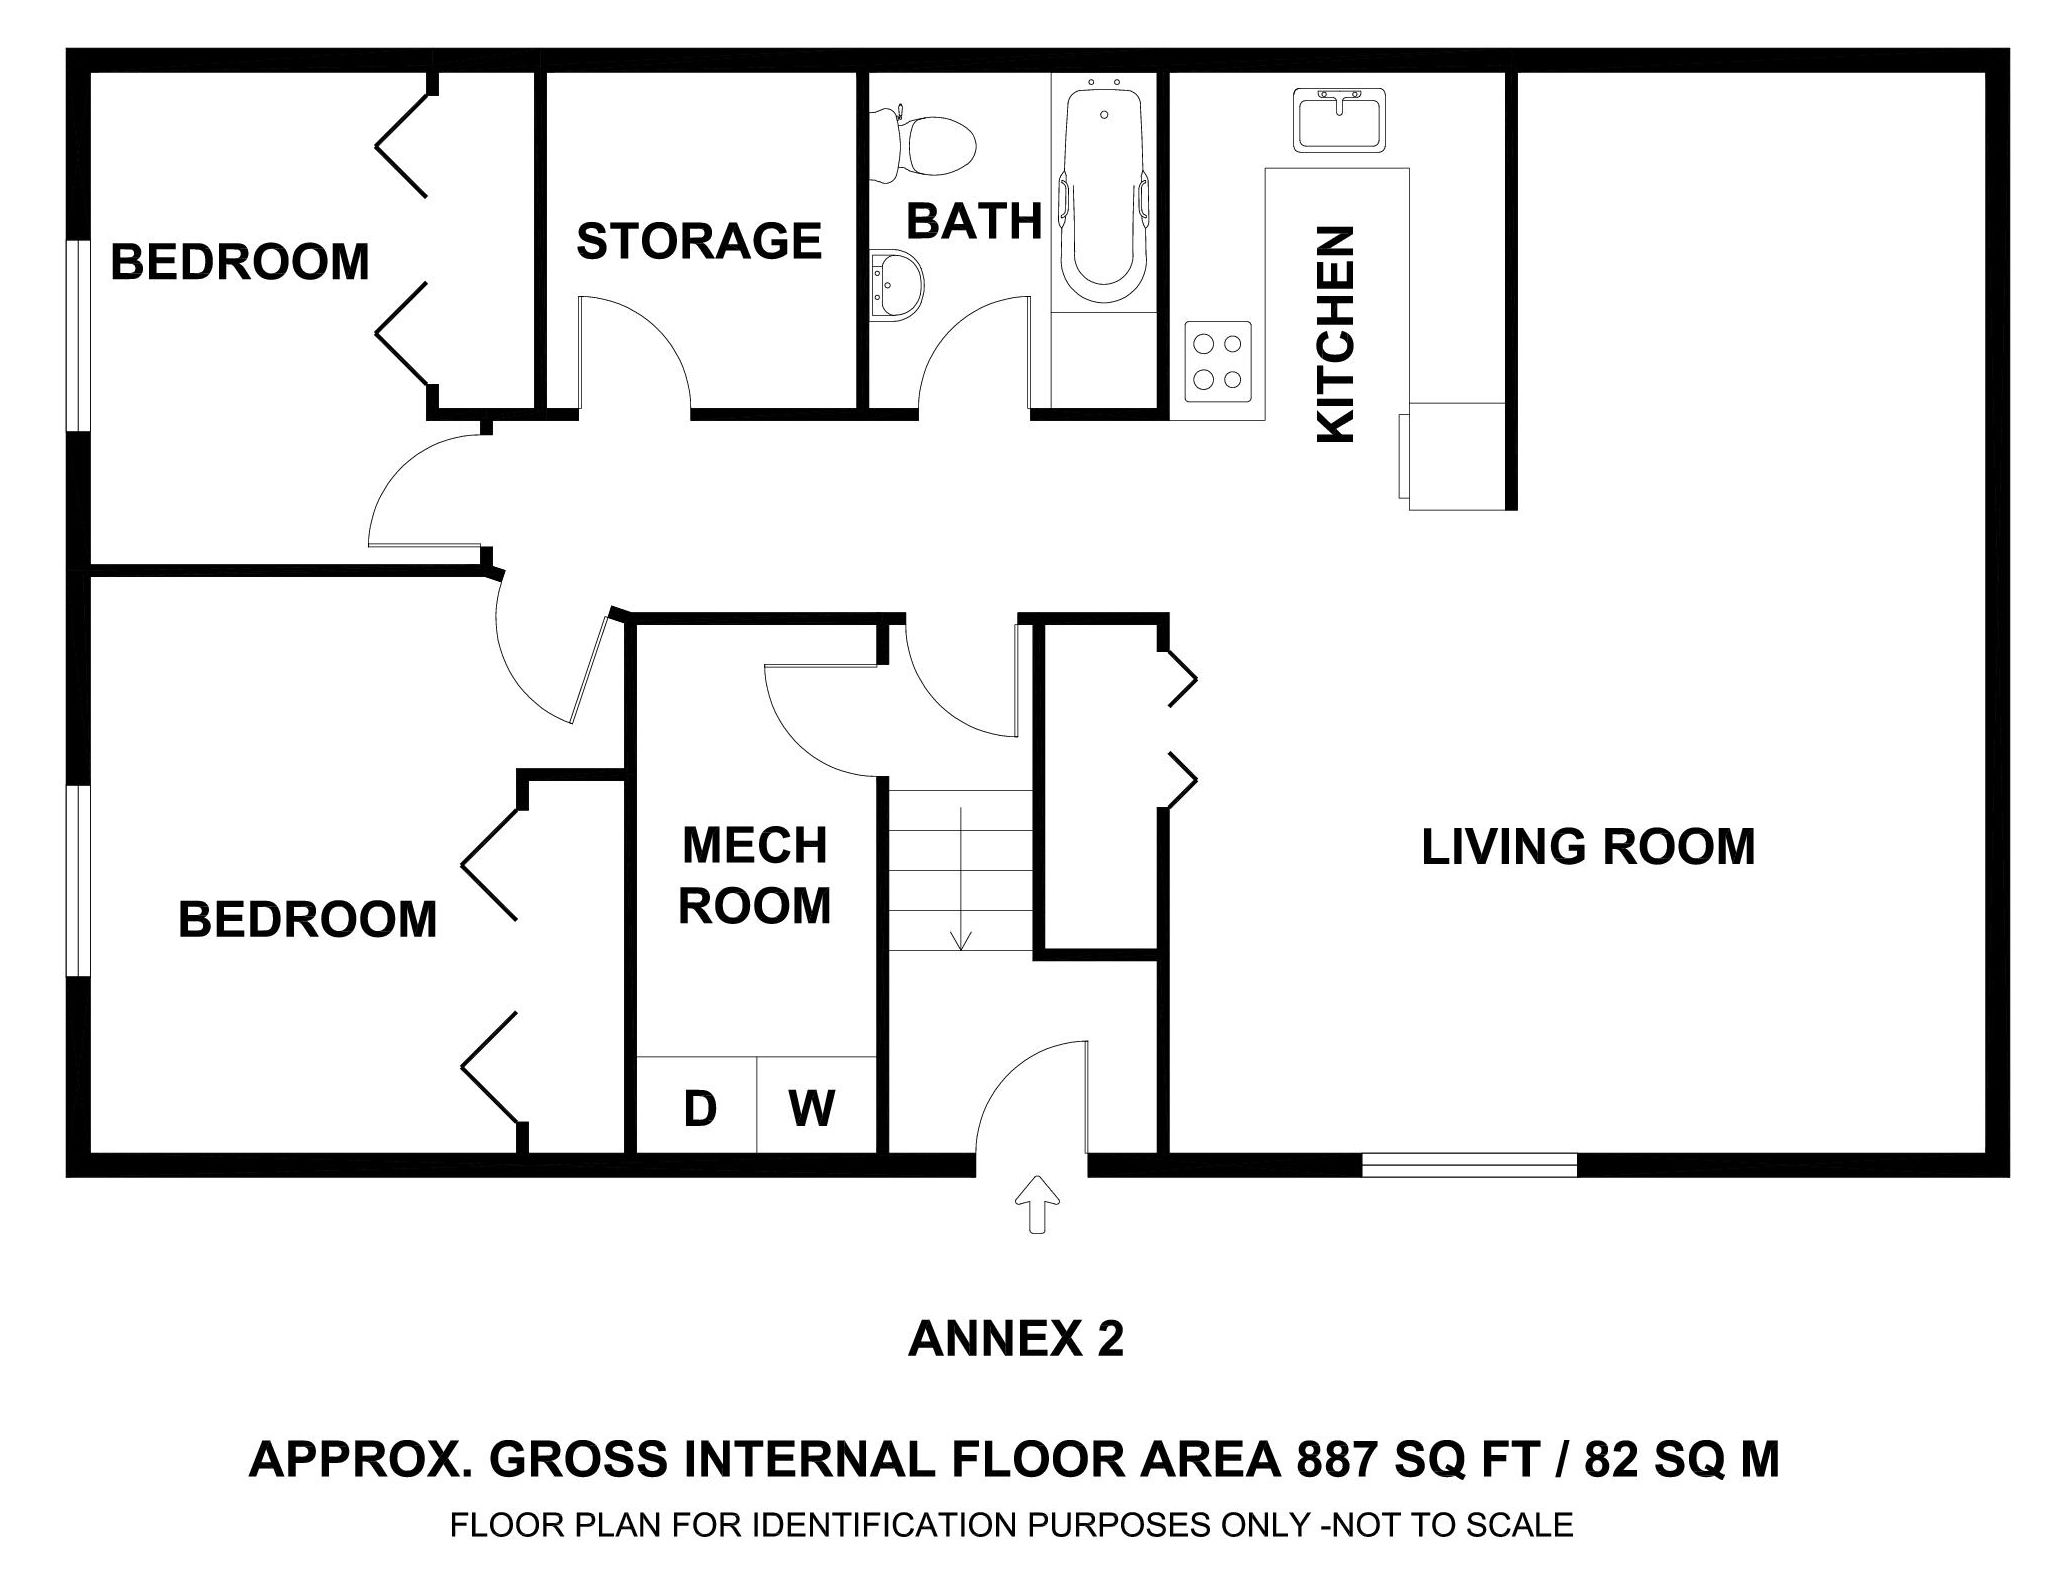 annex-2-site-plan.jpeg